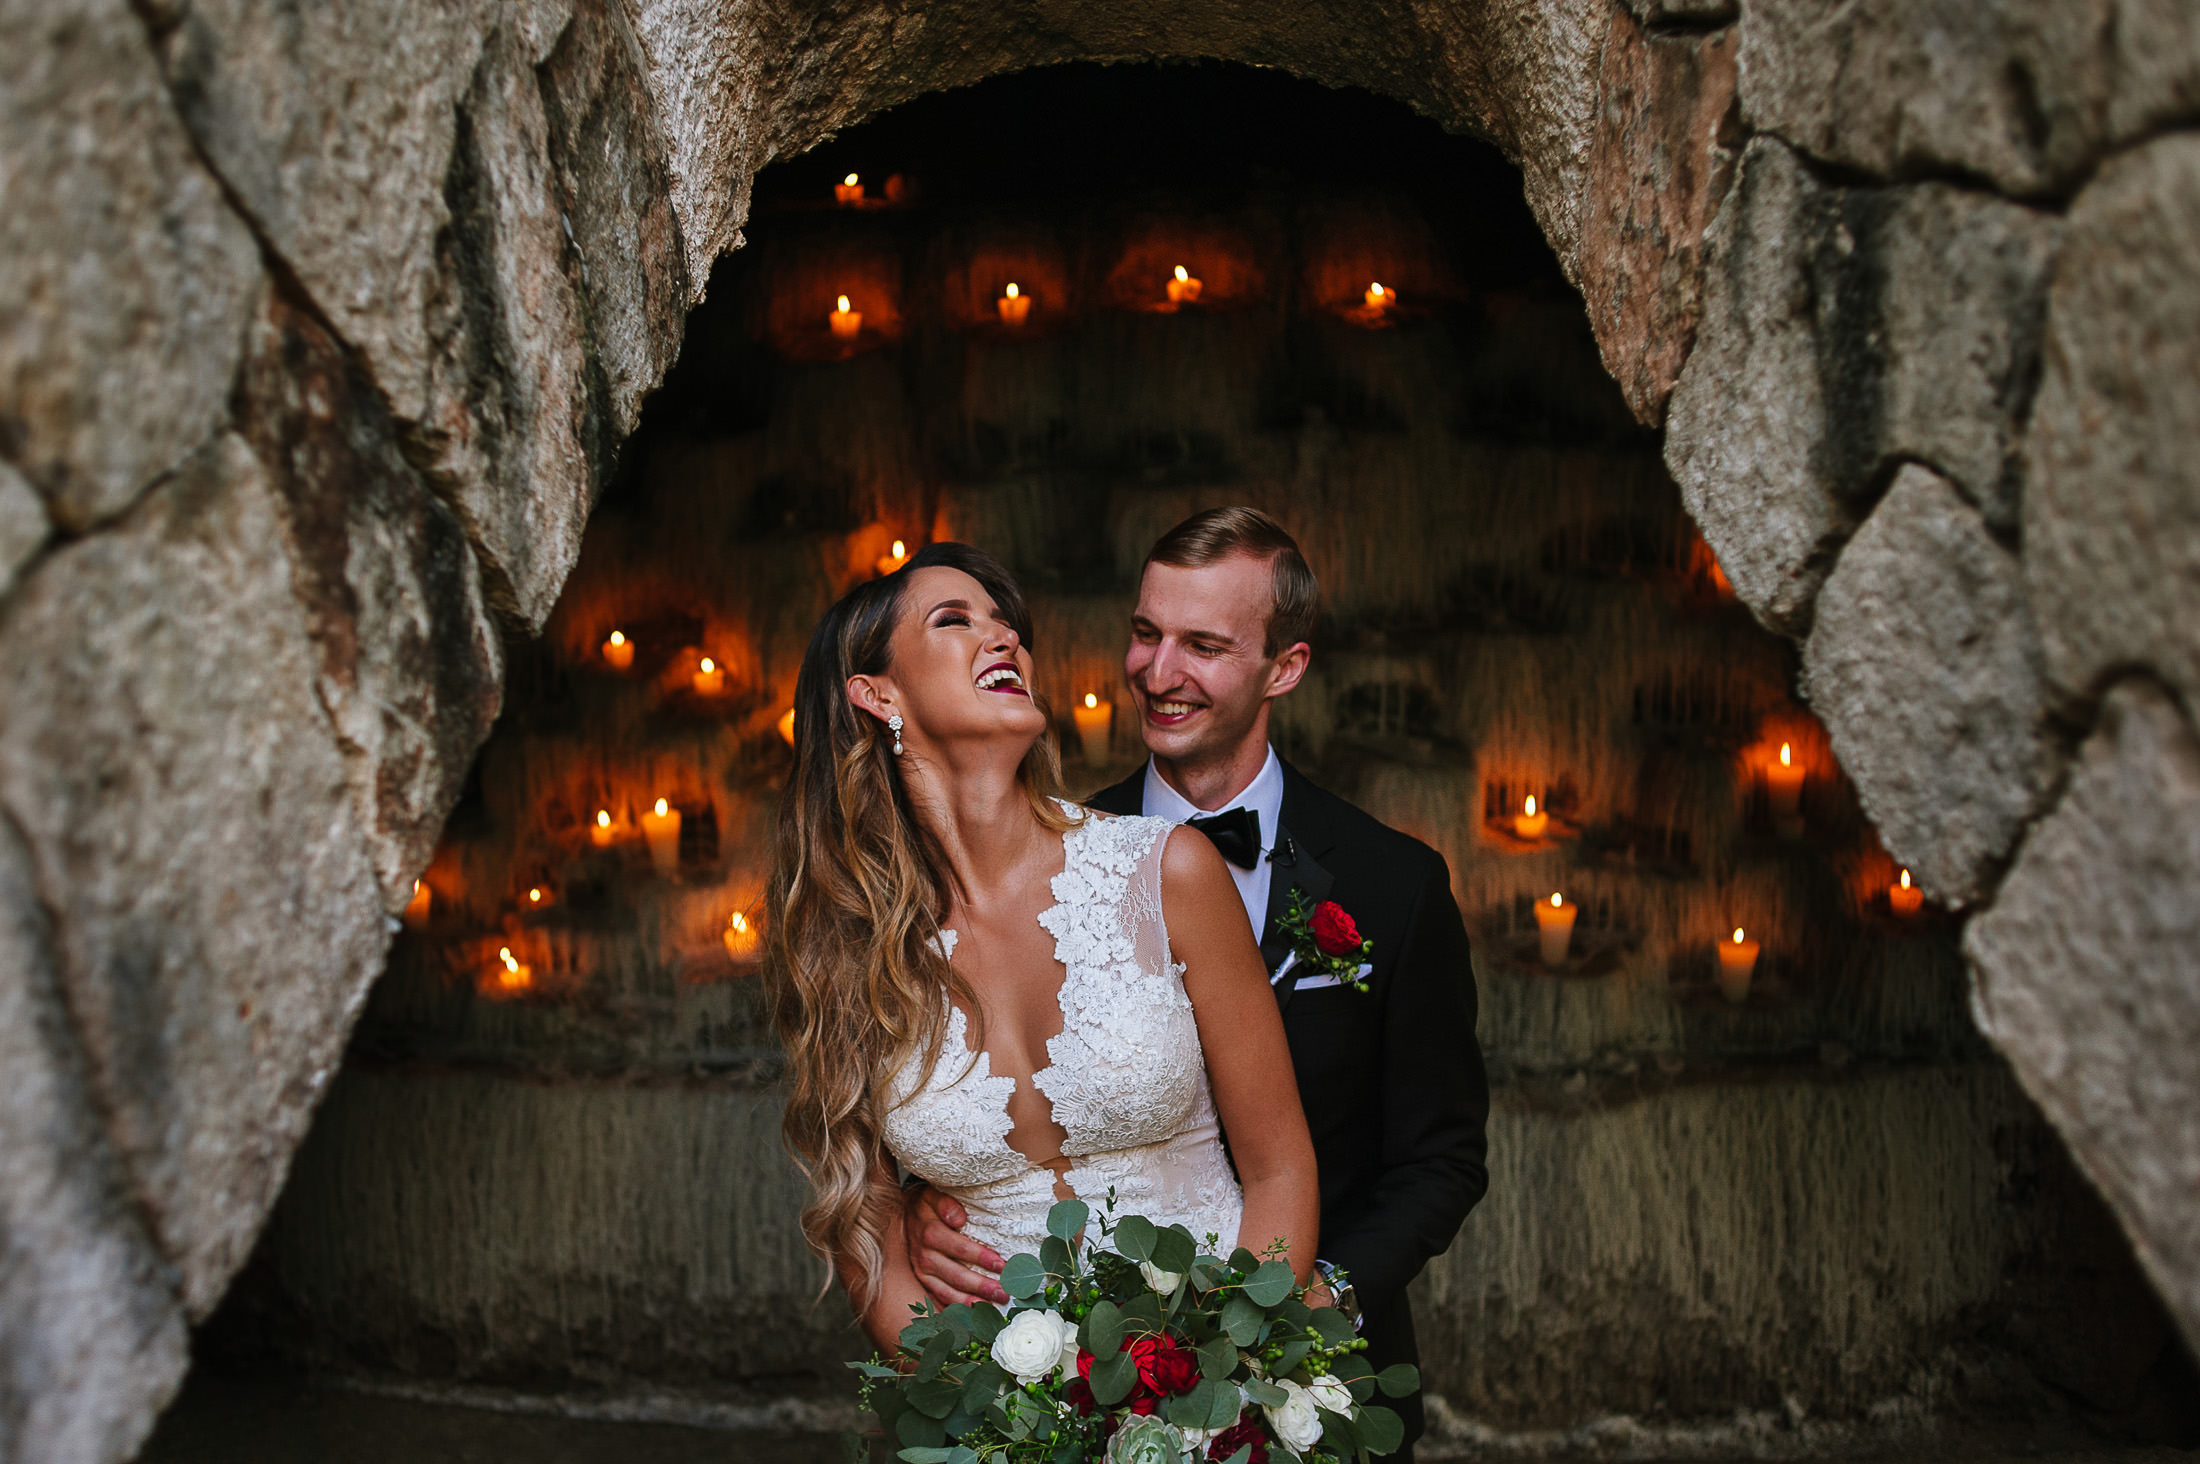 Bride and groom at Xcaret Park in front of the candles by Capilla de los Suspiros portrait